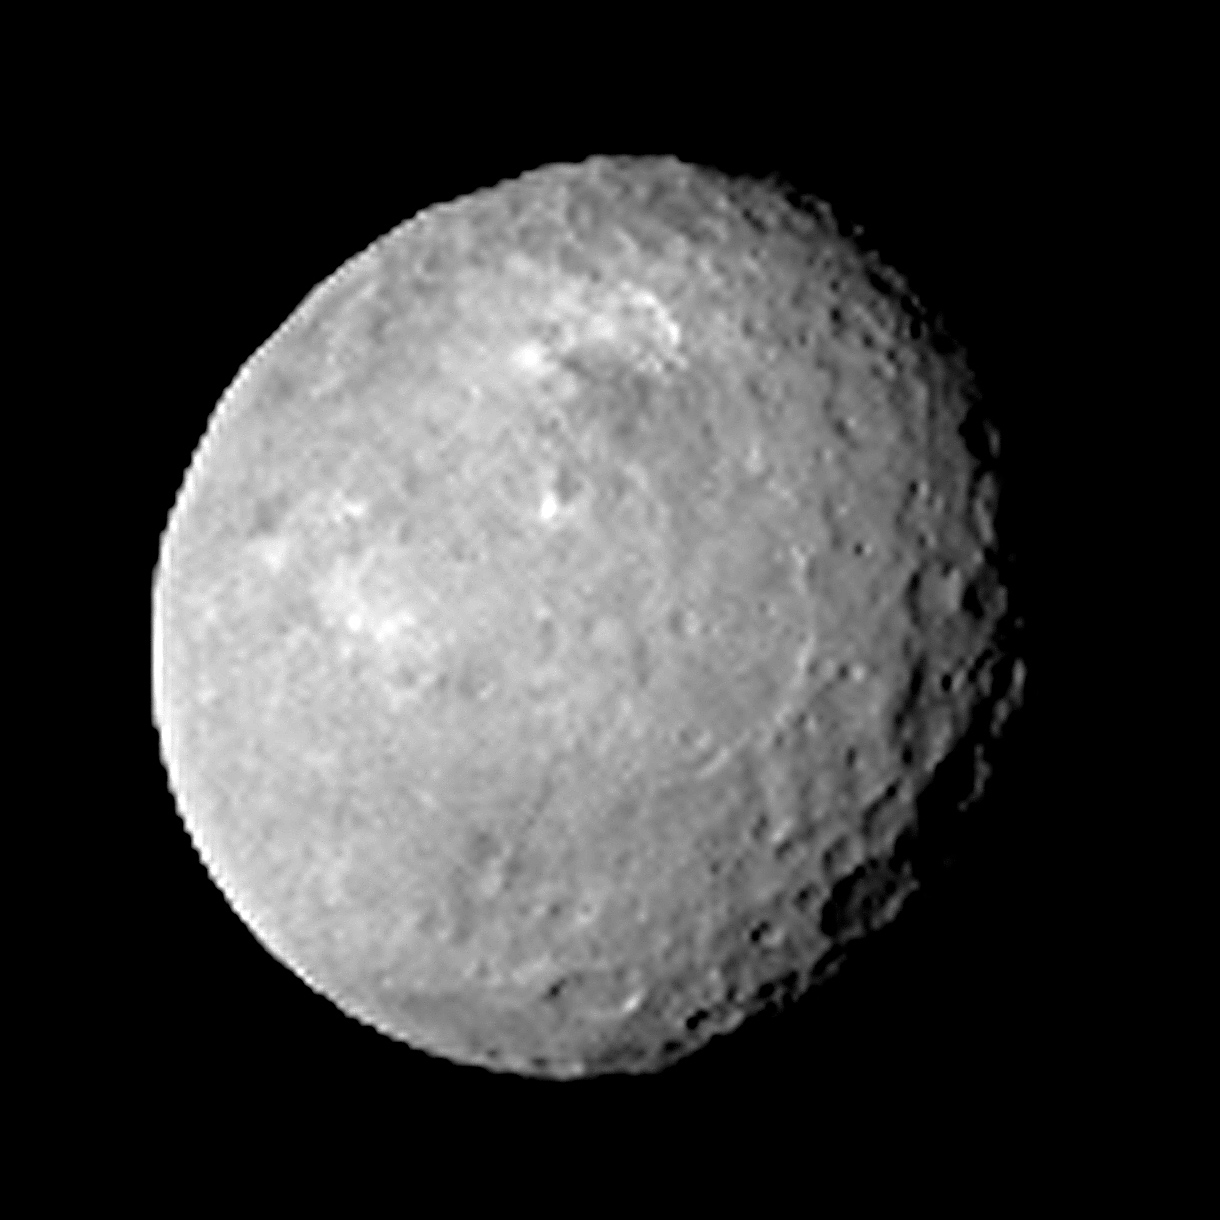 Image Of Ceres Captured By NASAs Dawn Spacecraft During Approach On Feb 12 2015